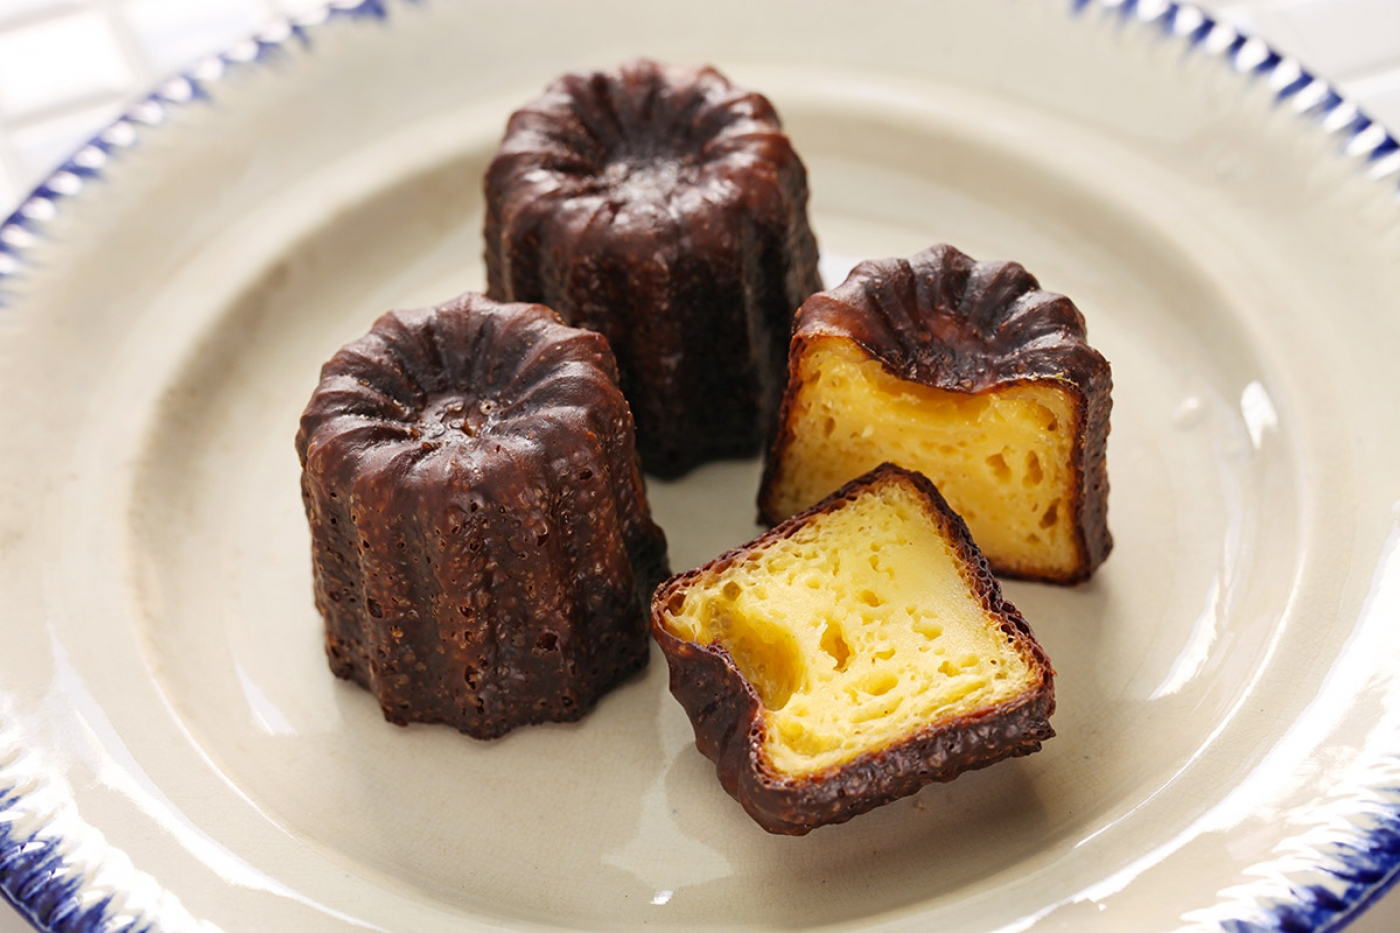 Cannelés of Bordeaux - A kitchen tested recipe that delivers a very good version